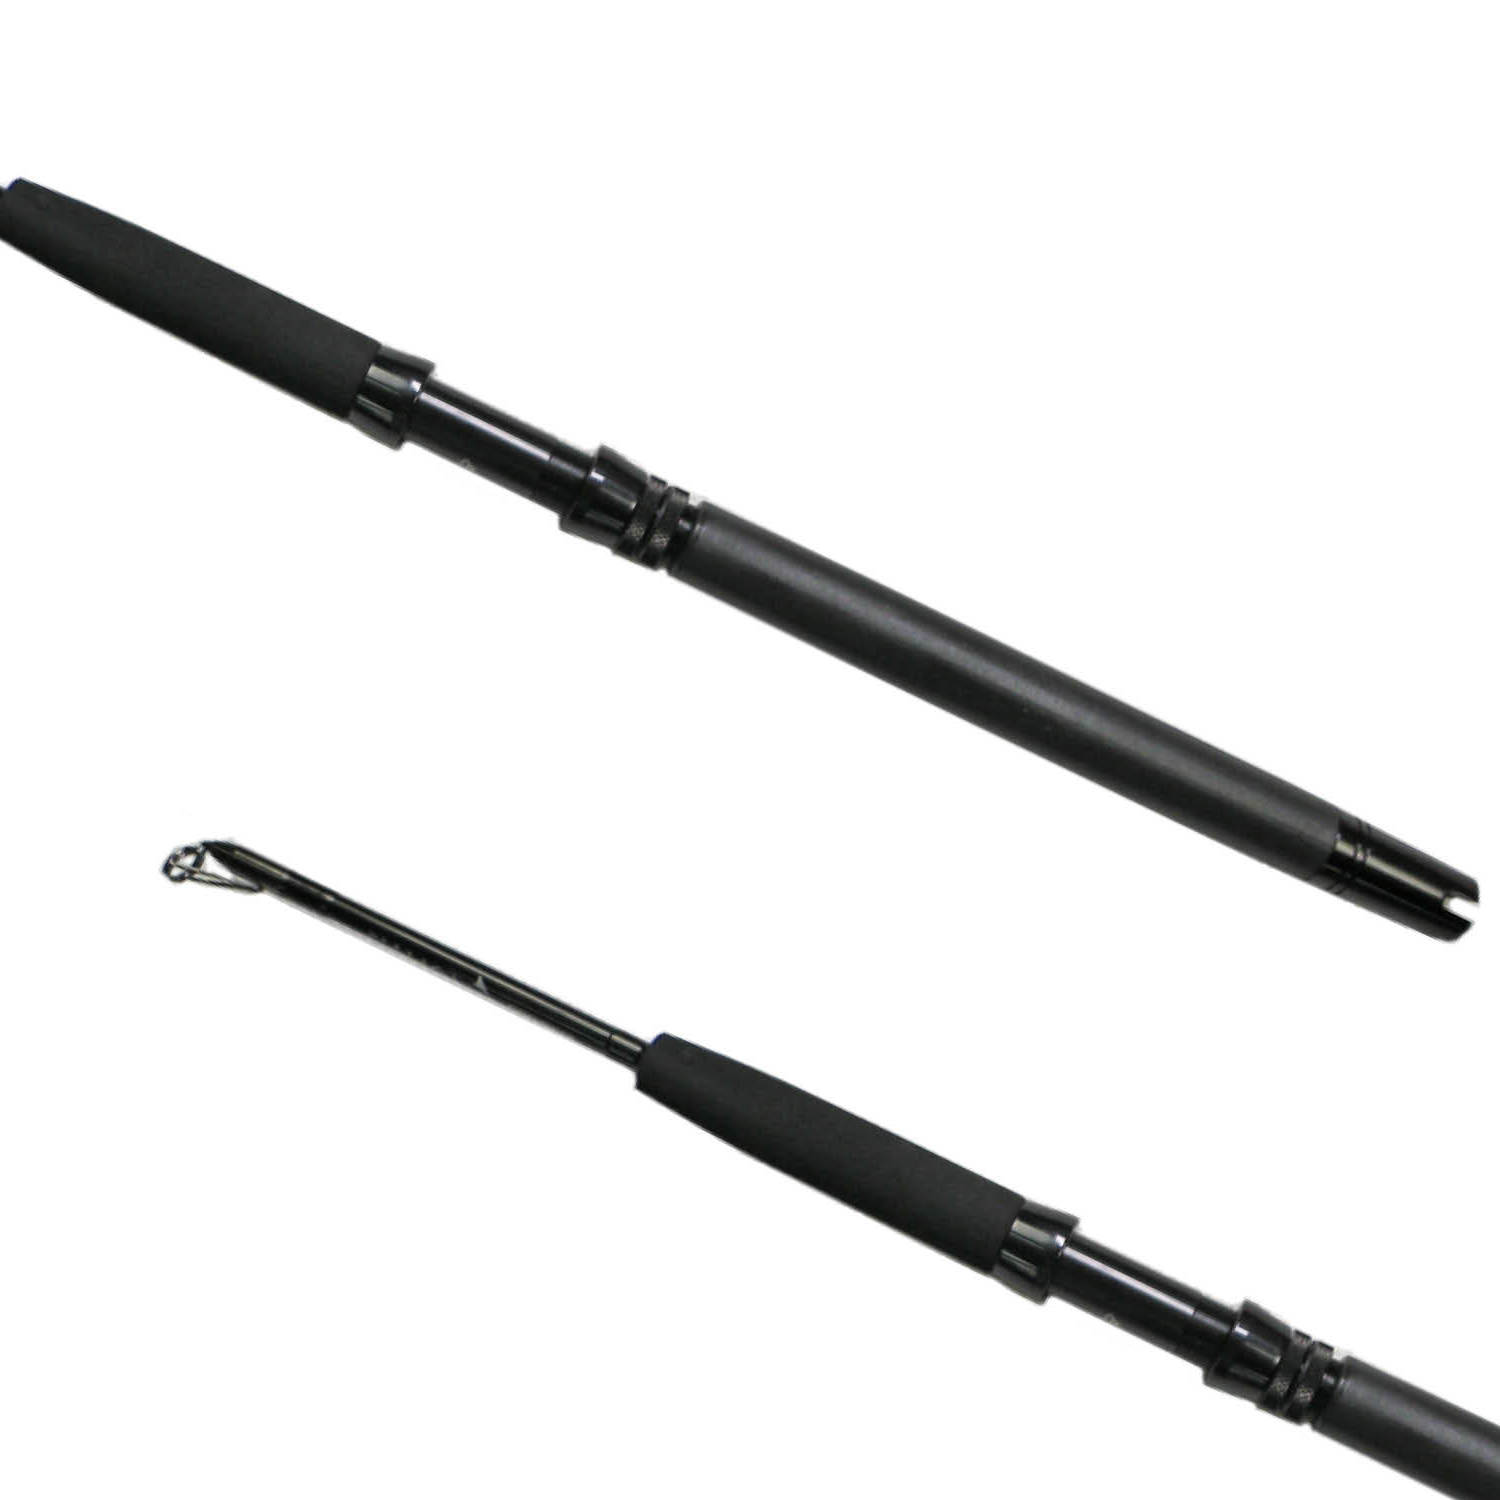 TALLUS KITE ROD